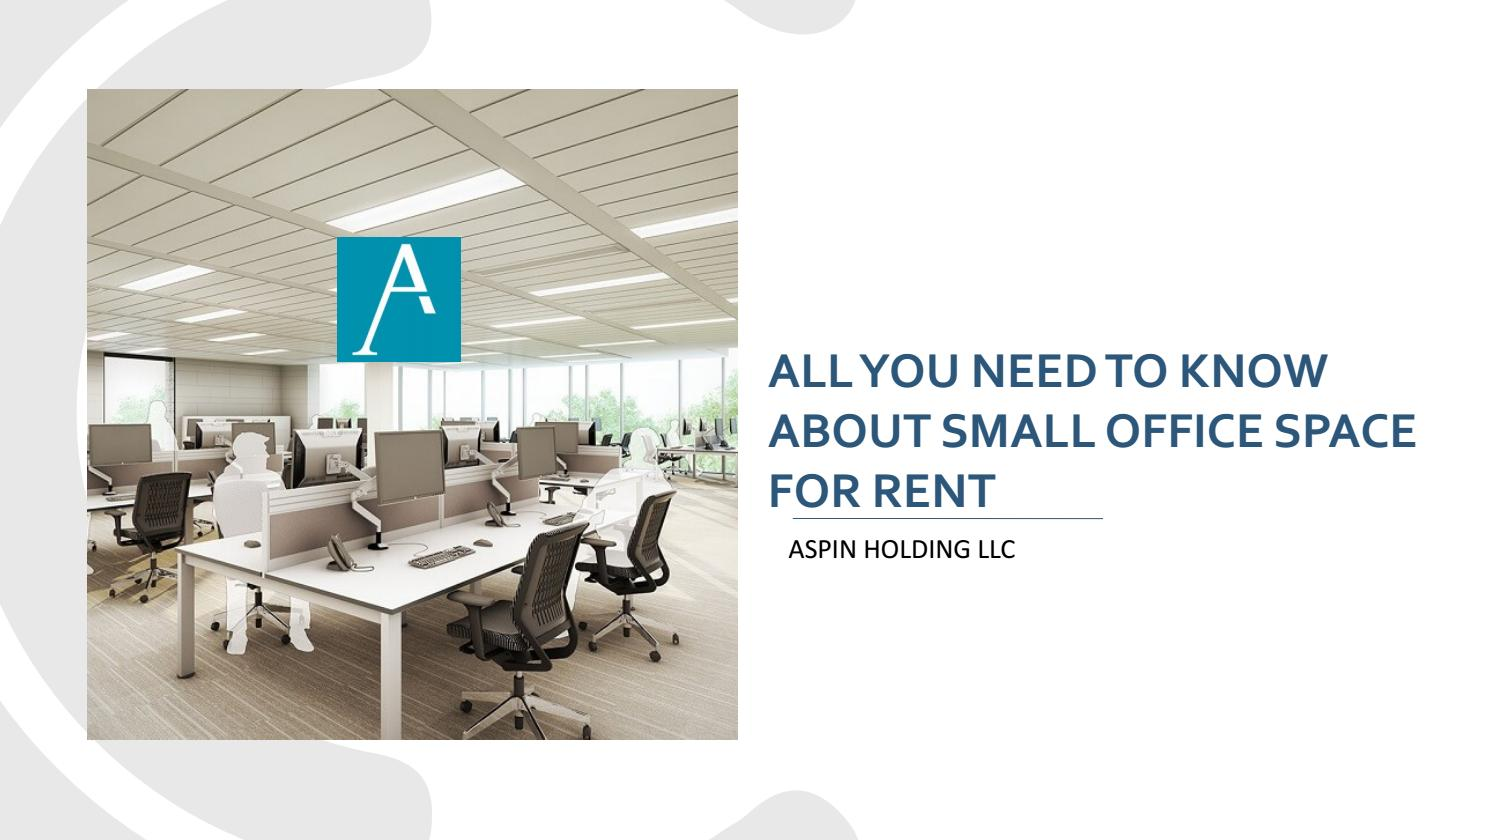 All You Need To Know About Small Office Space For Rent By Byappointment Uae Issuu